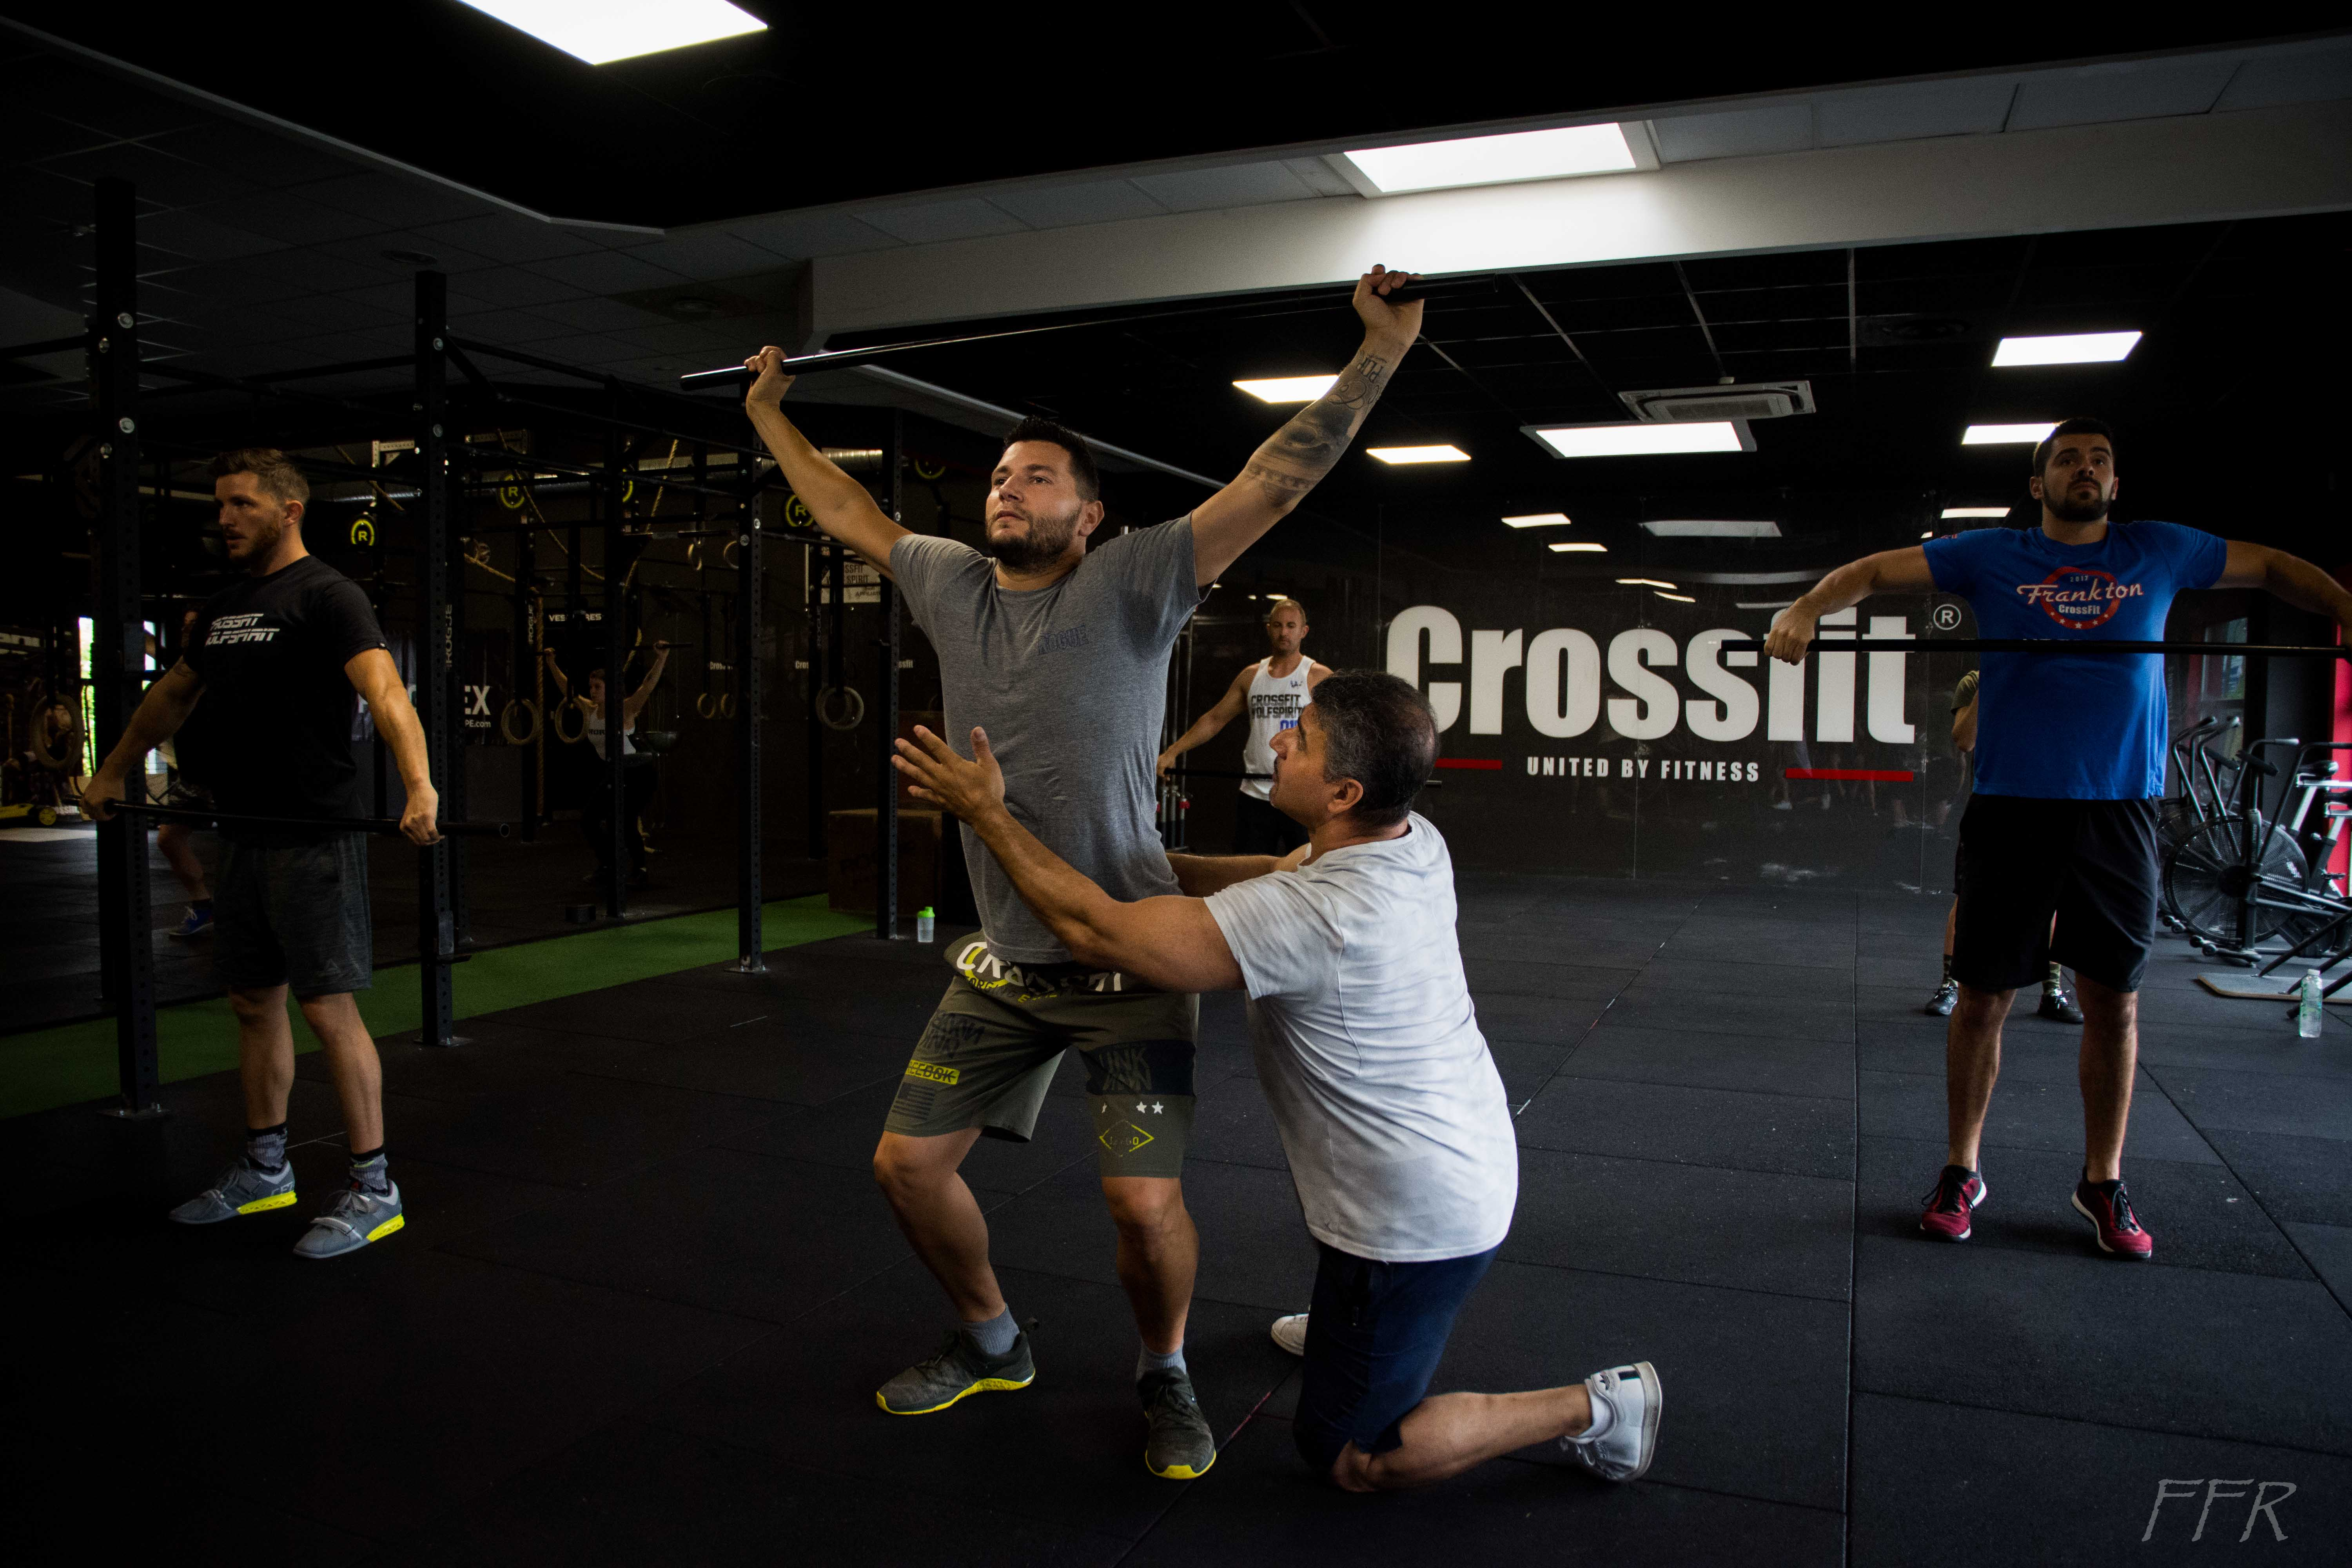 CROSSFIT WOLFSPIRIT